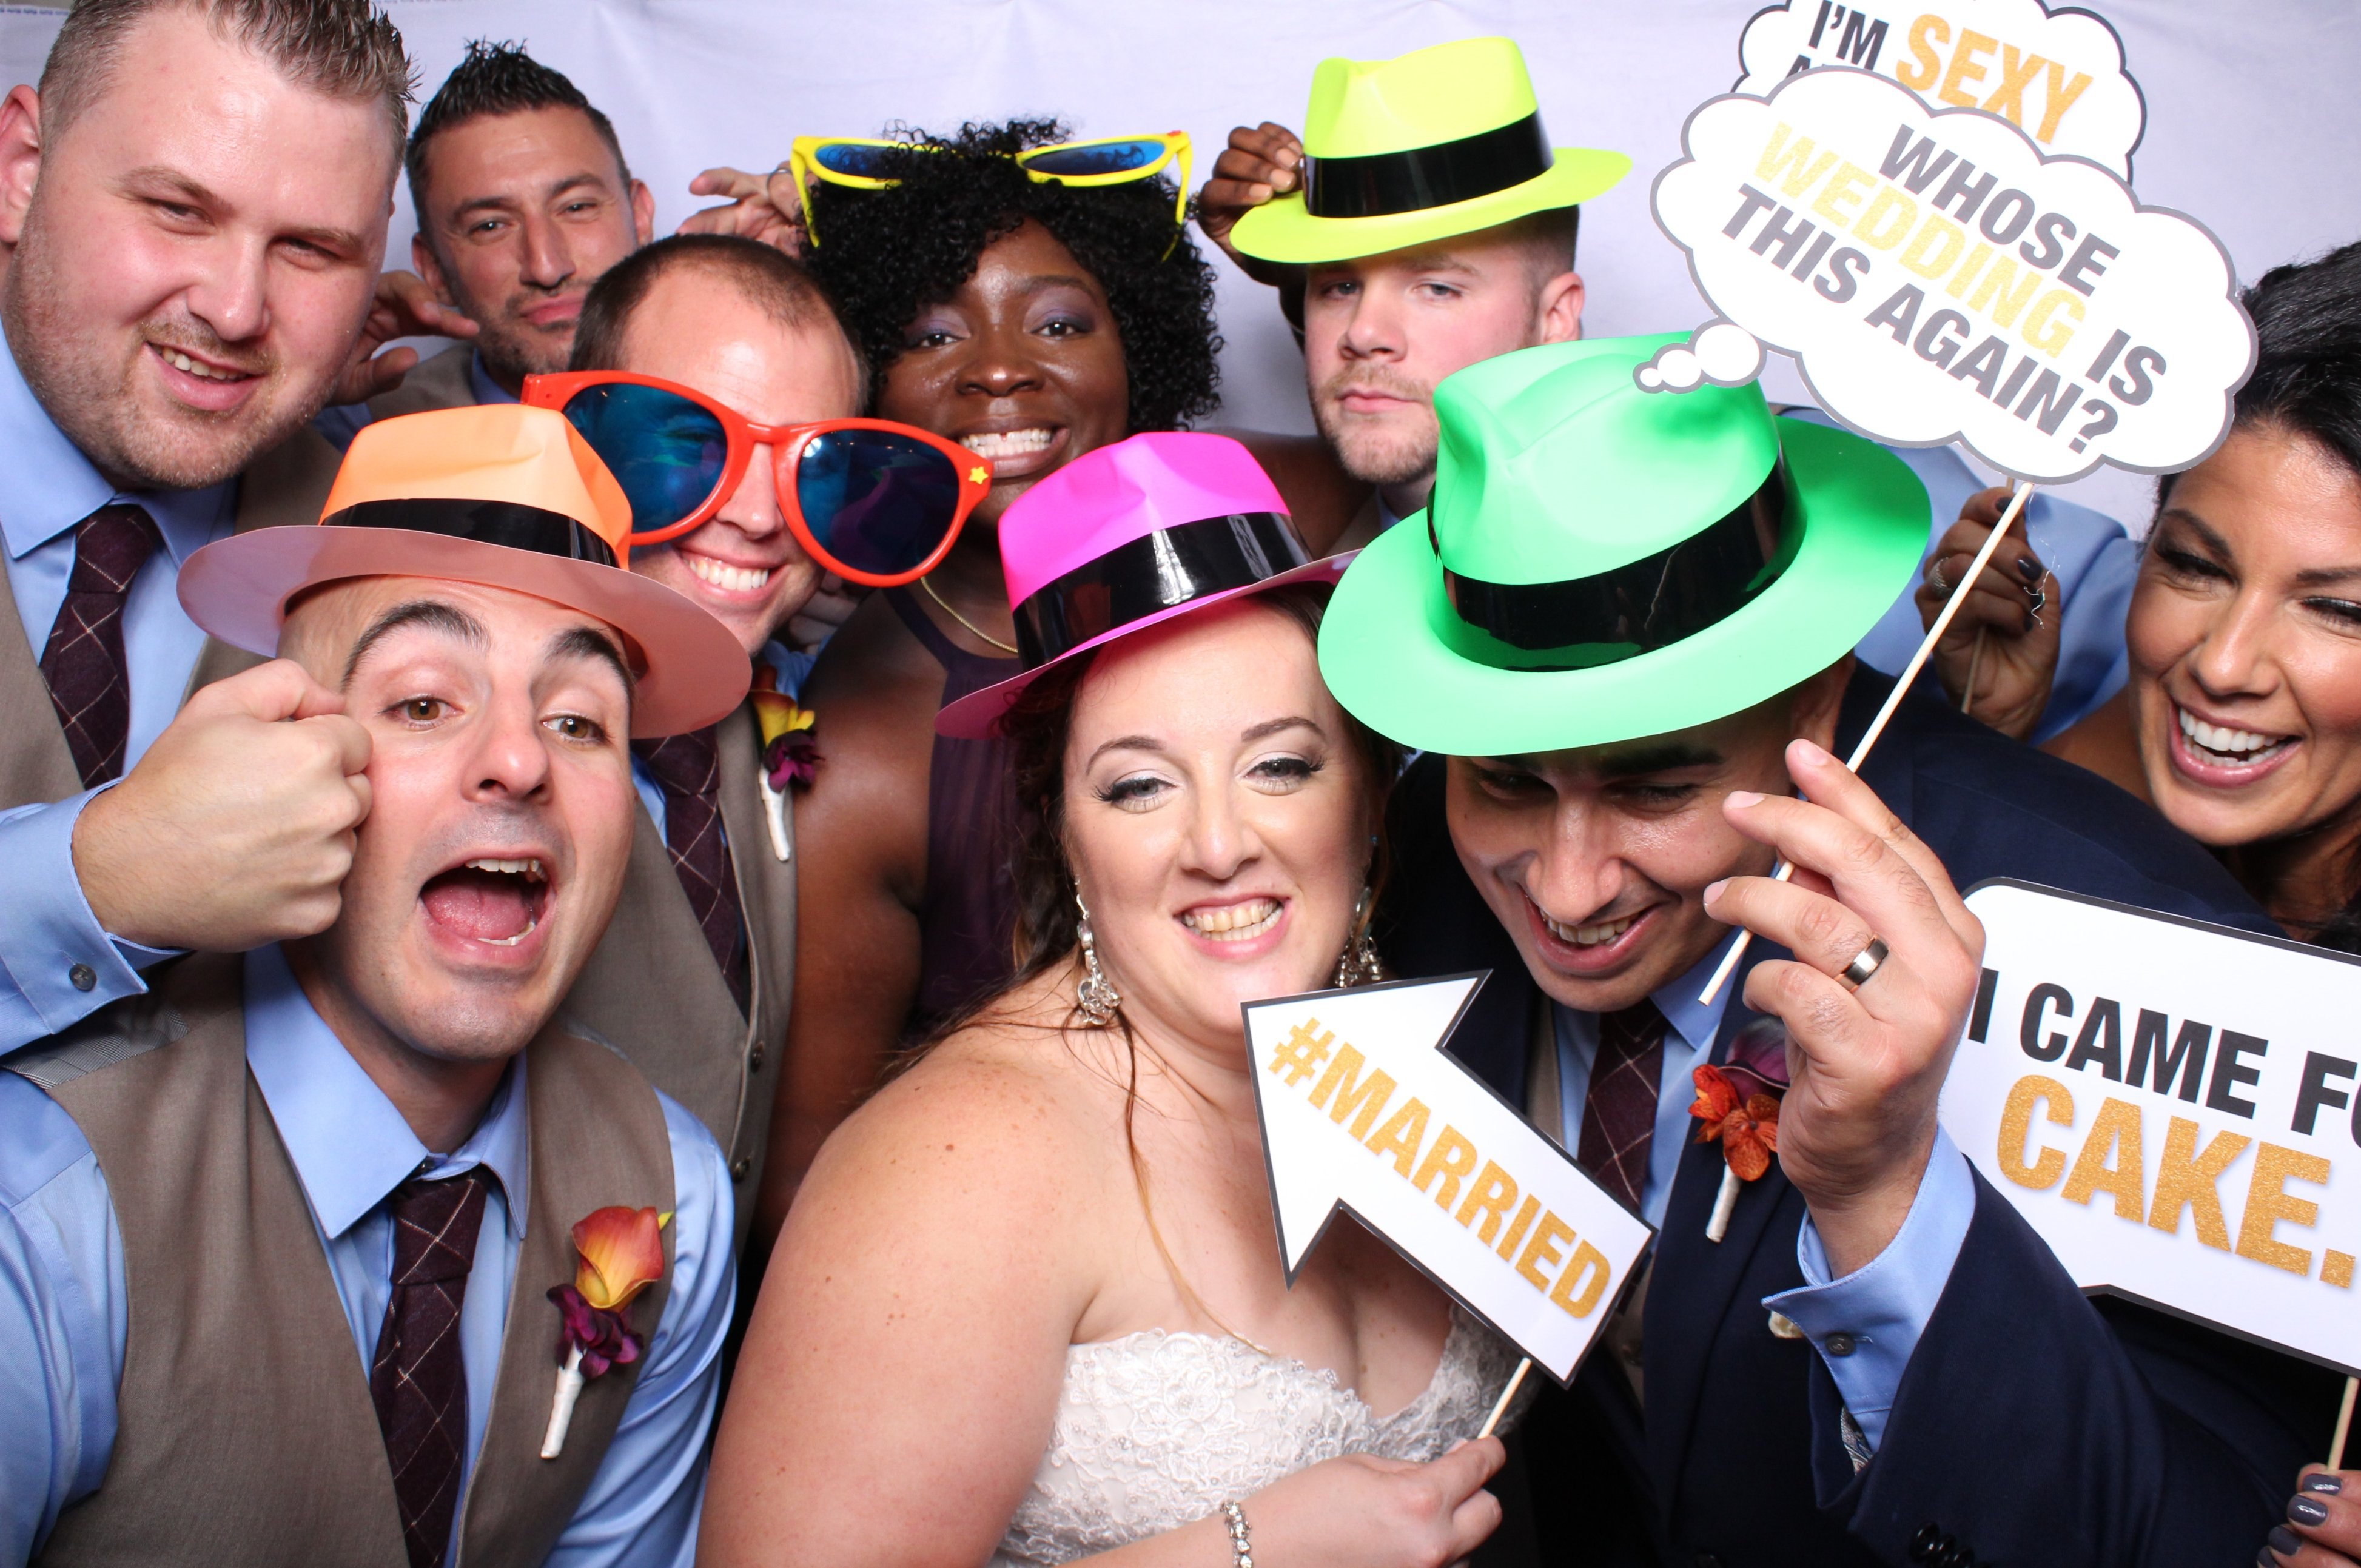 davids-country-inn-photo-booth